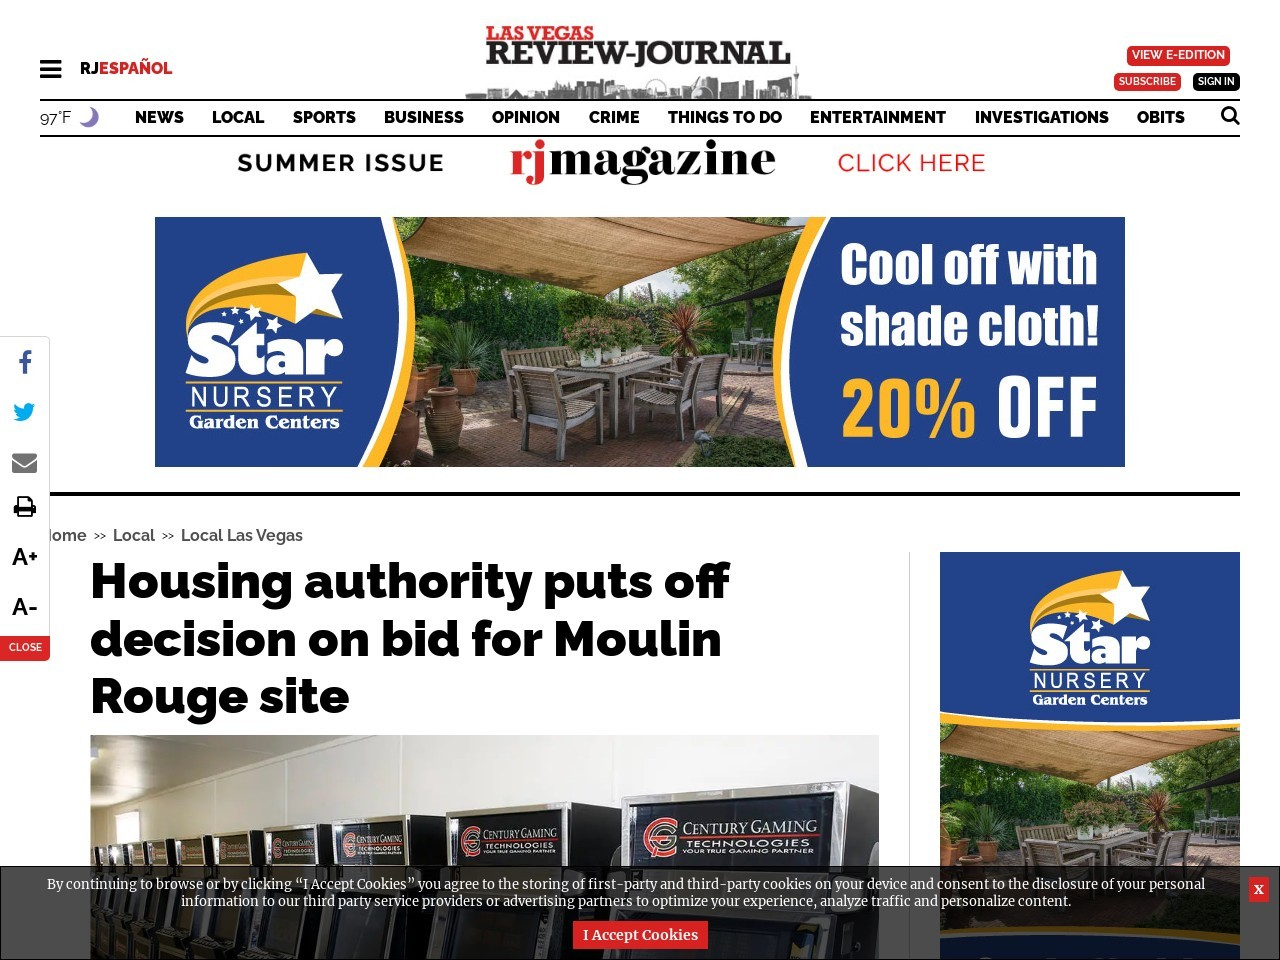 Housing authority puts off decision on bid for Moulin Rouge site